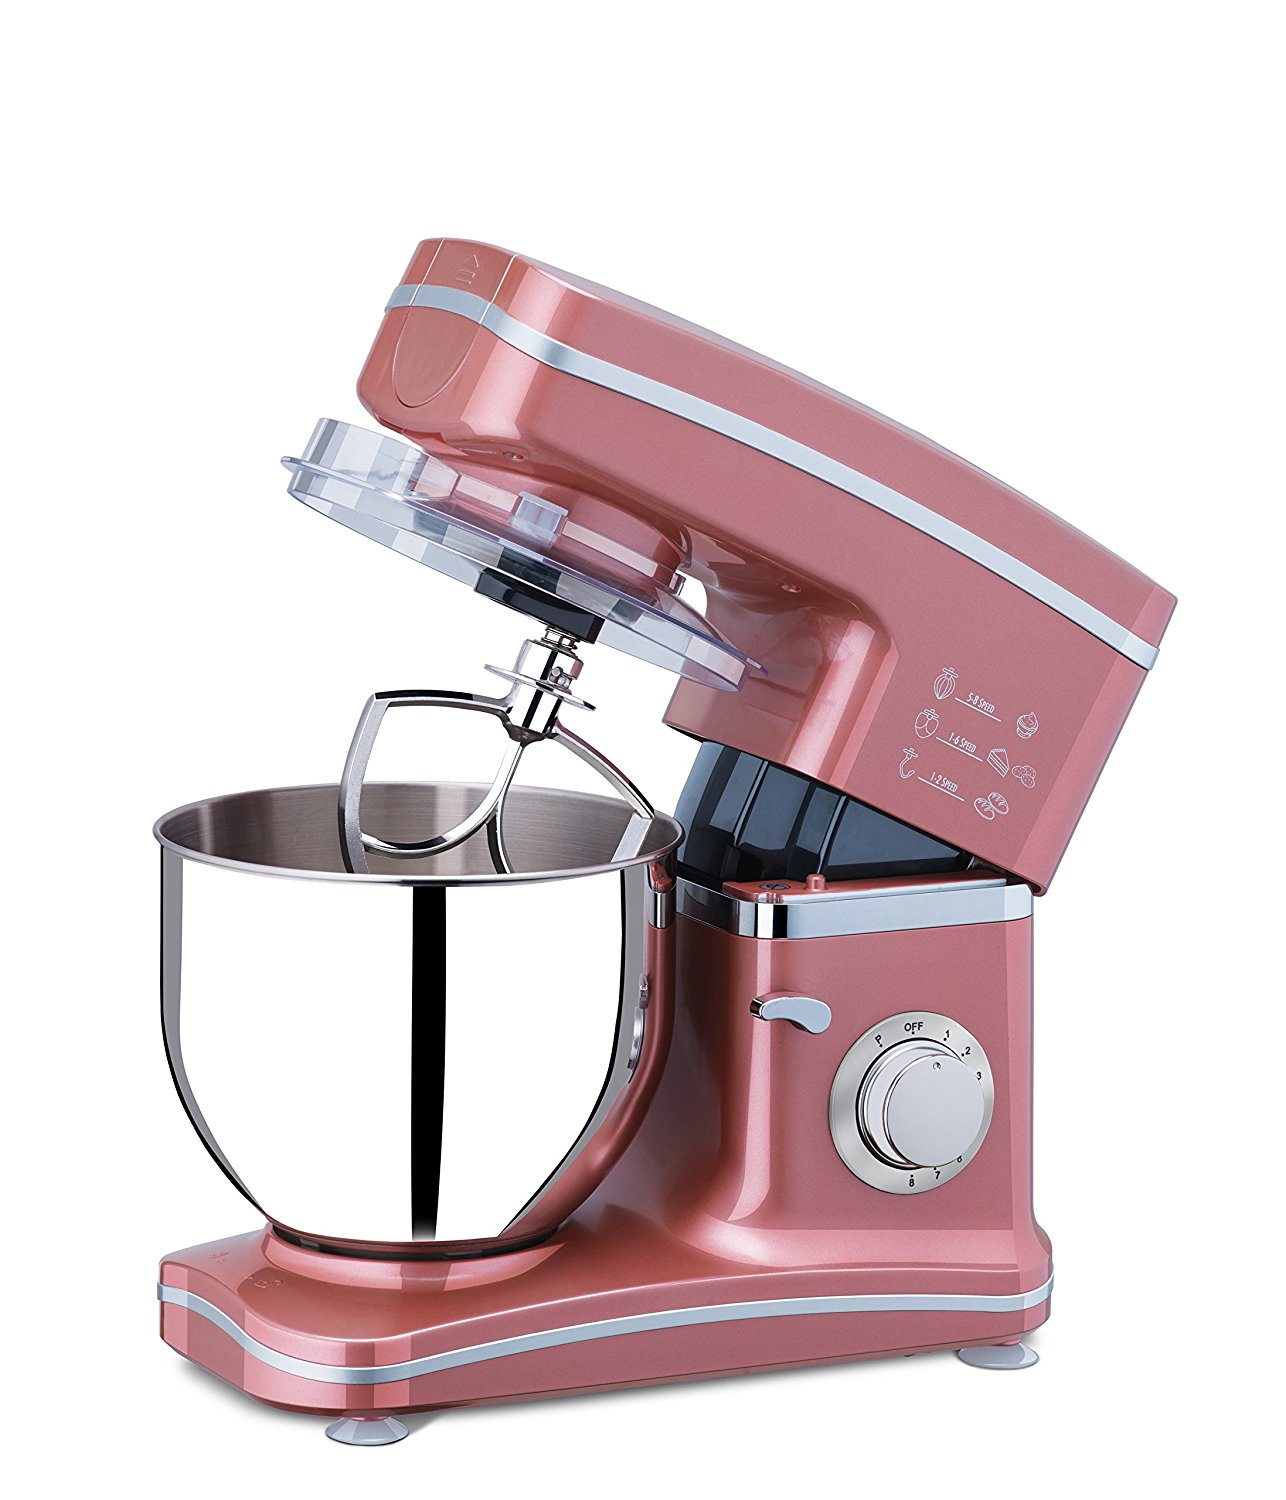 KitchenAid Artisan Series 5-Quart Tilt-Head Stand Mixer Choose from over 20 different colors of the KitchenAid Artisan Series Tilt-Head Stand Mixer for the one /5.